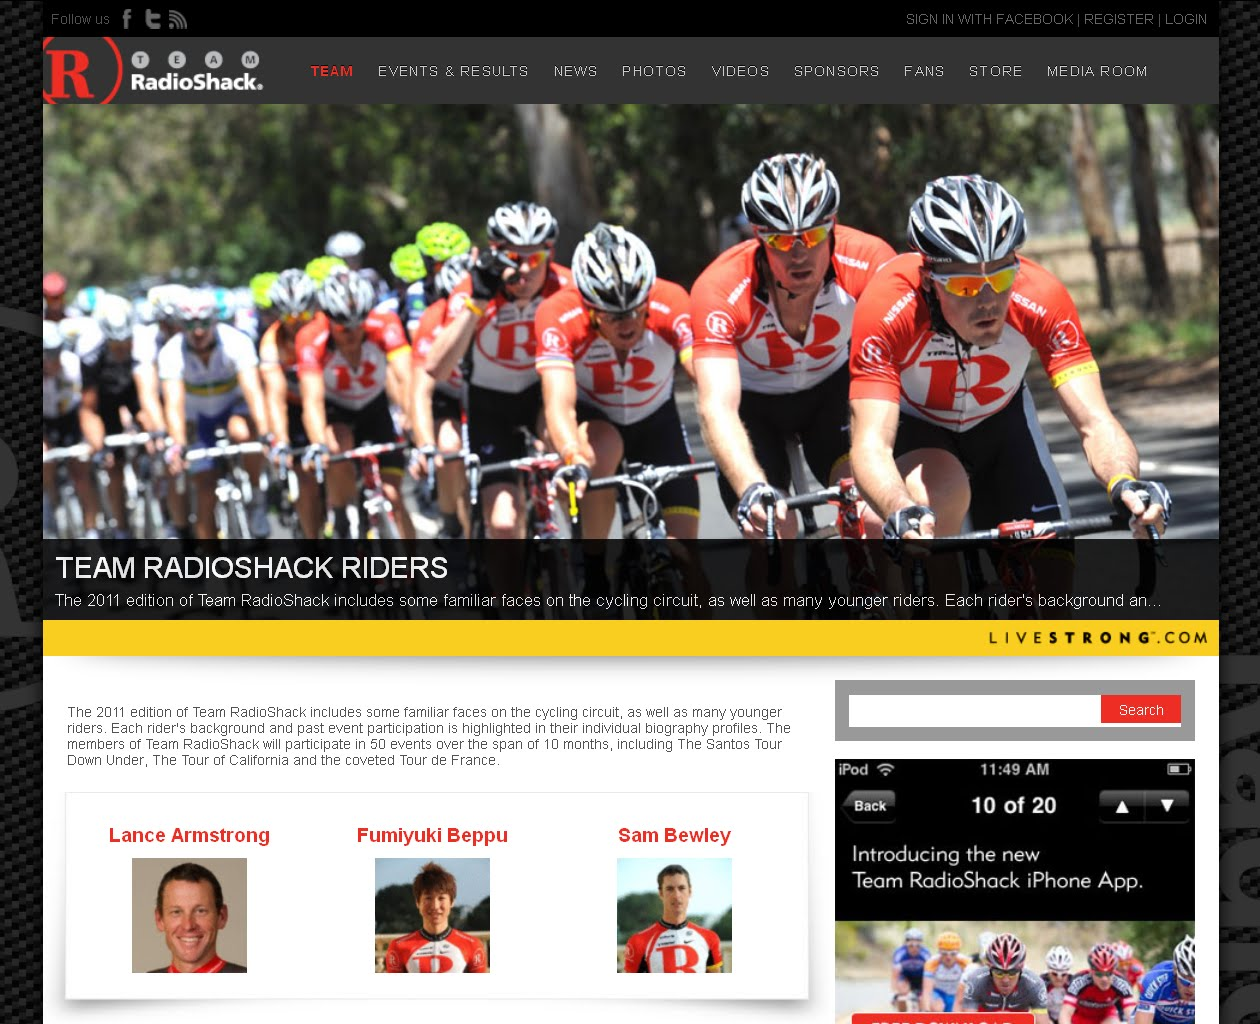 Image of Team RadioShack 2011 Riders page (click on image to go to livestrong.com/teamradioshack/riders)